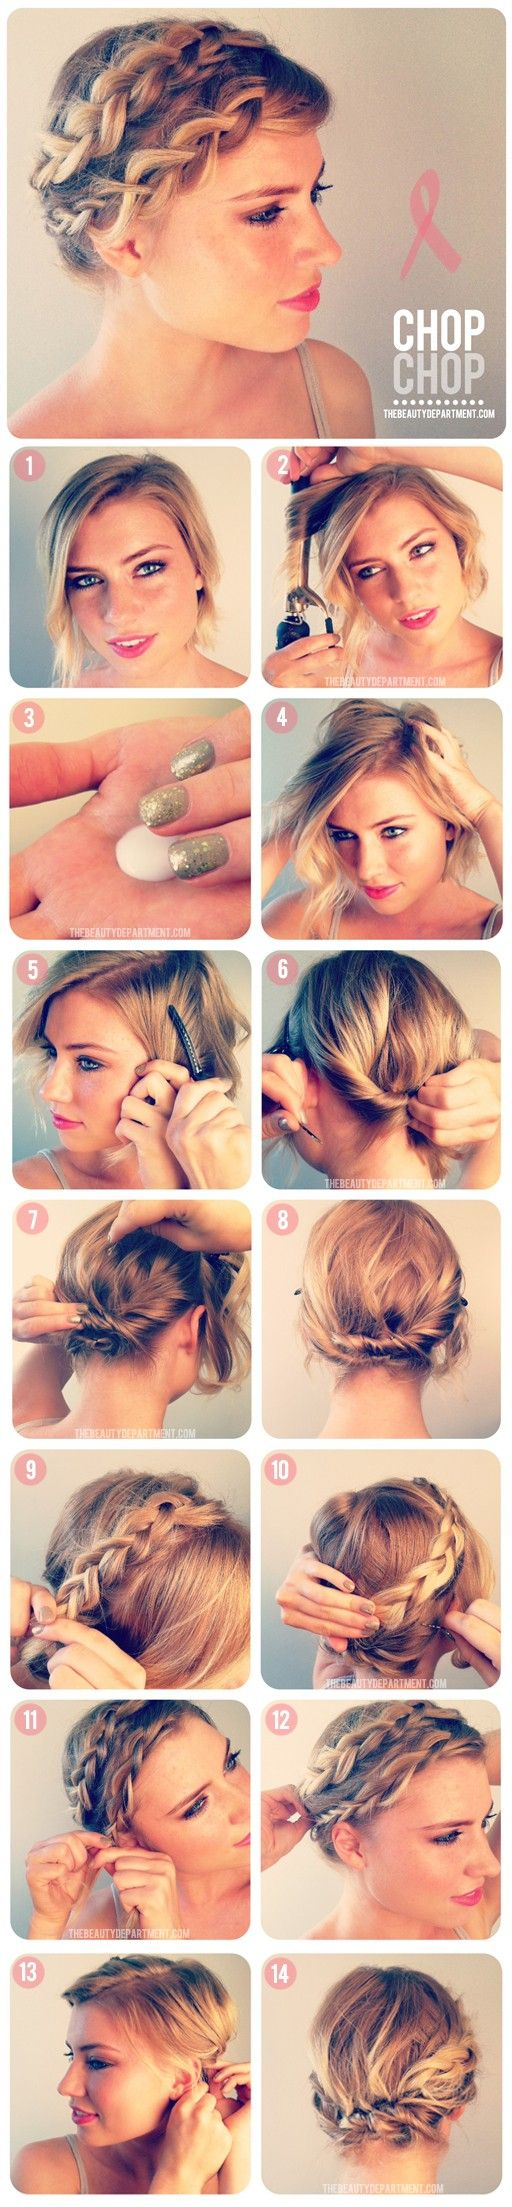 Astonishing 1000 Ideas About Braid Short Hair On Pinterest Layered Haircuts Hairstyle Inspiration Daily Dogsangcom